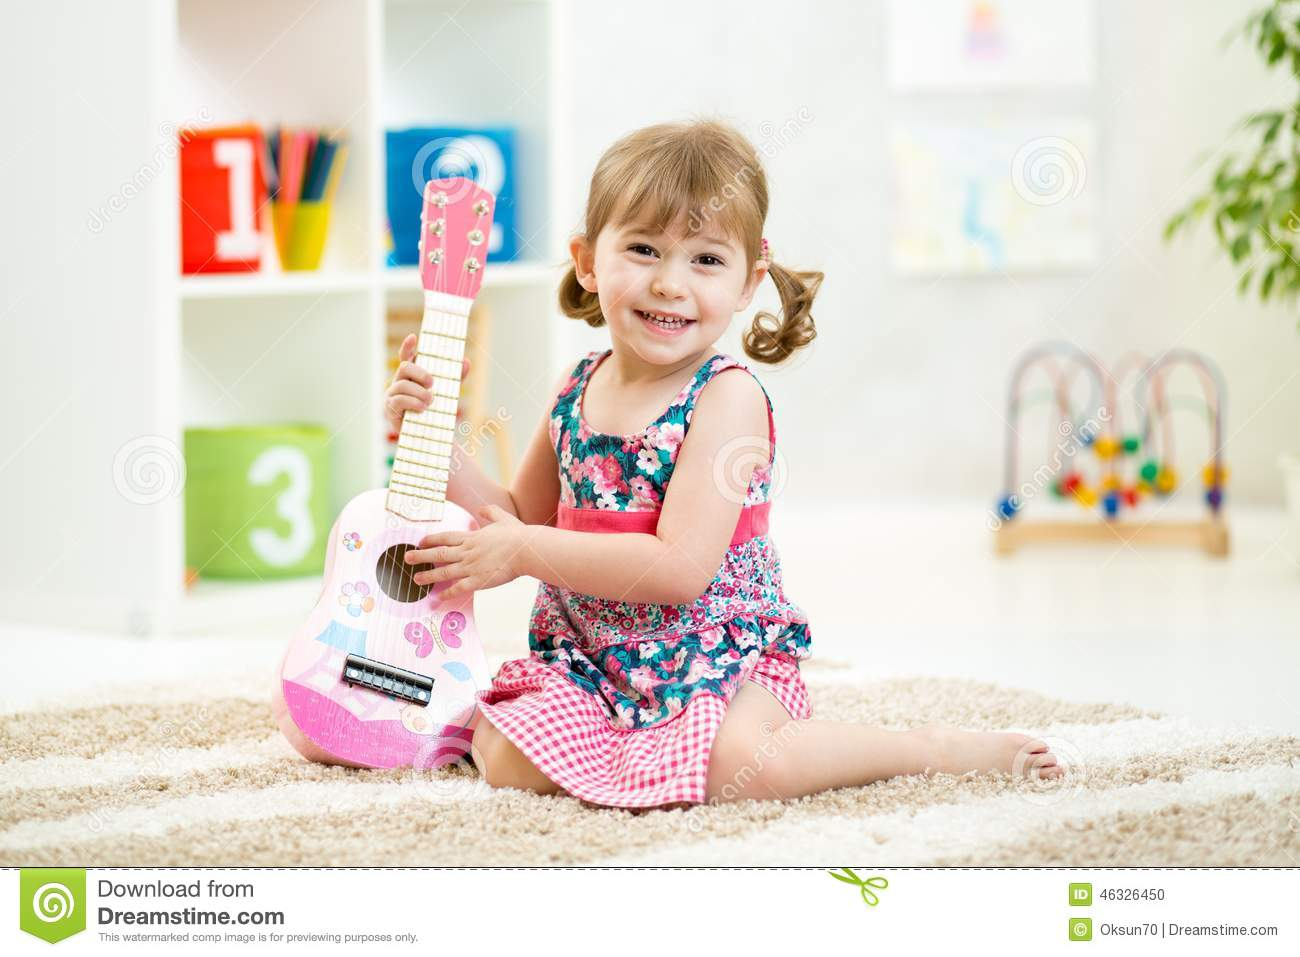 petite fille avec le cadeau de jouet de guitare photo stock image du musique home 46326450. Black Bedroom Furniture Sets. Home Design Ideas